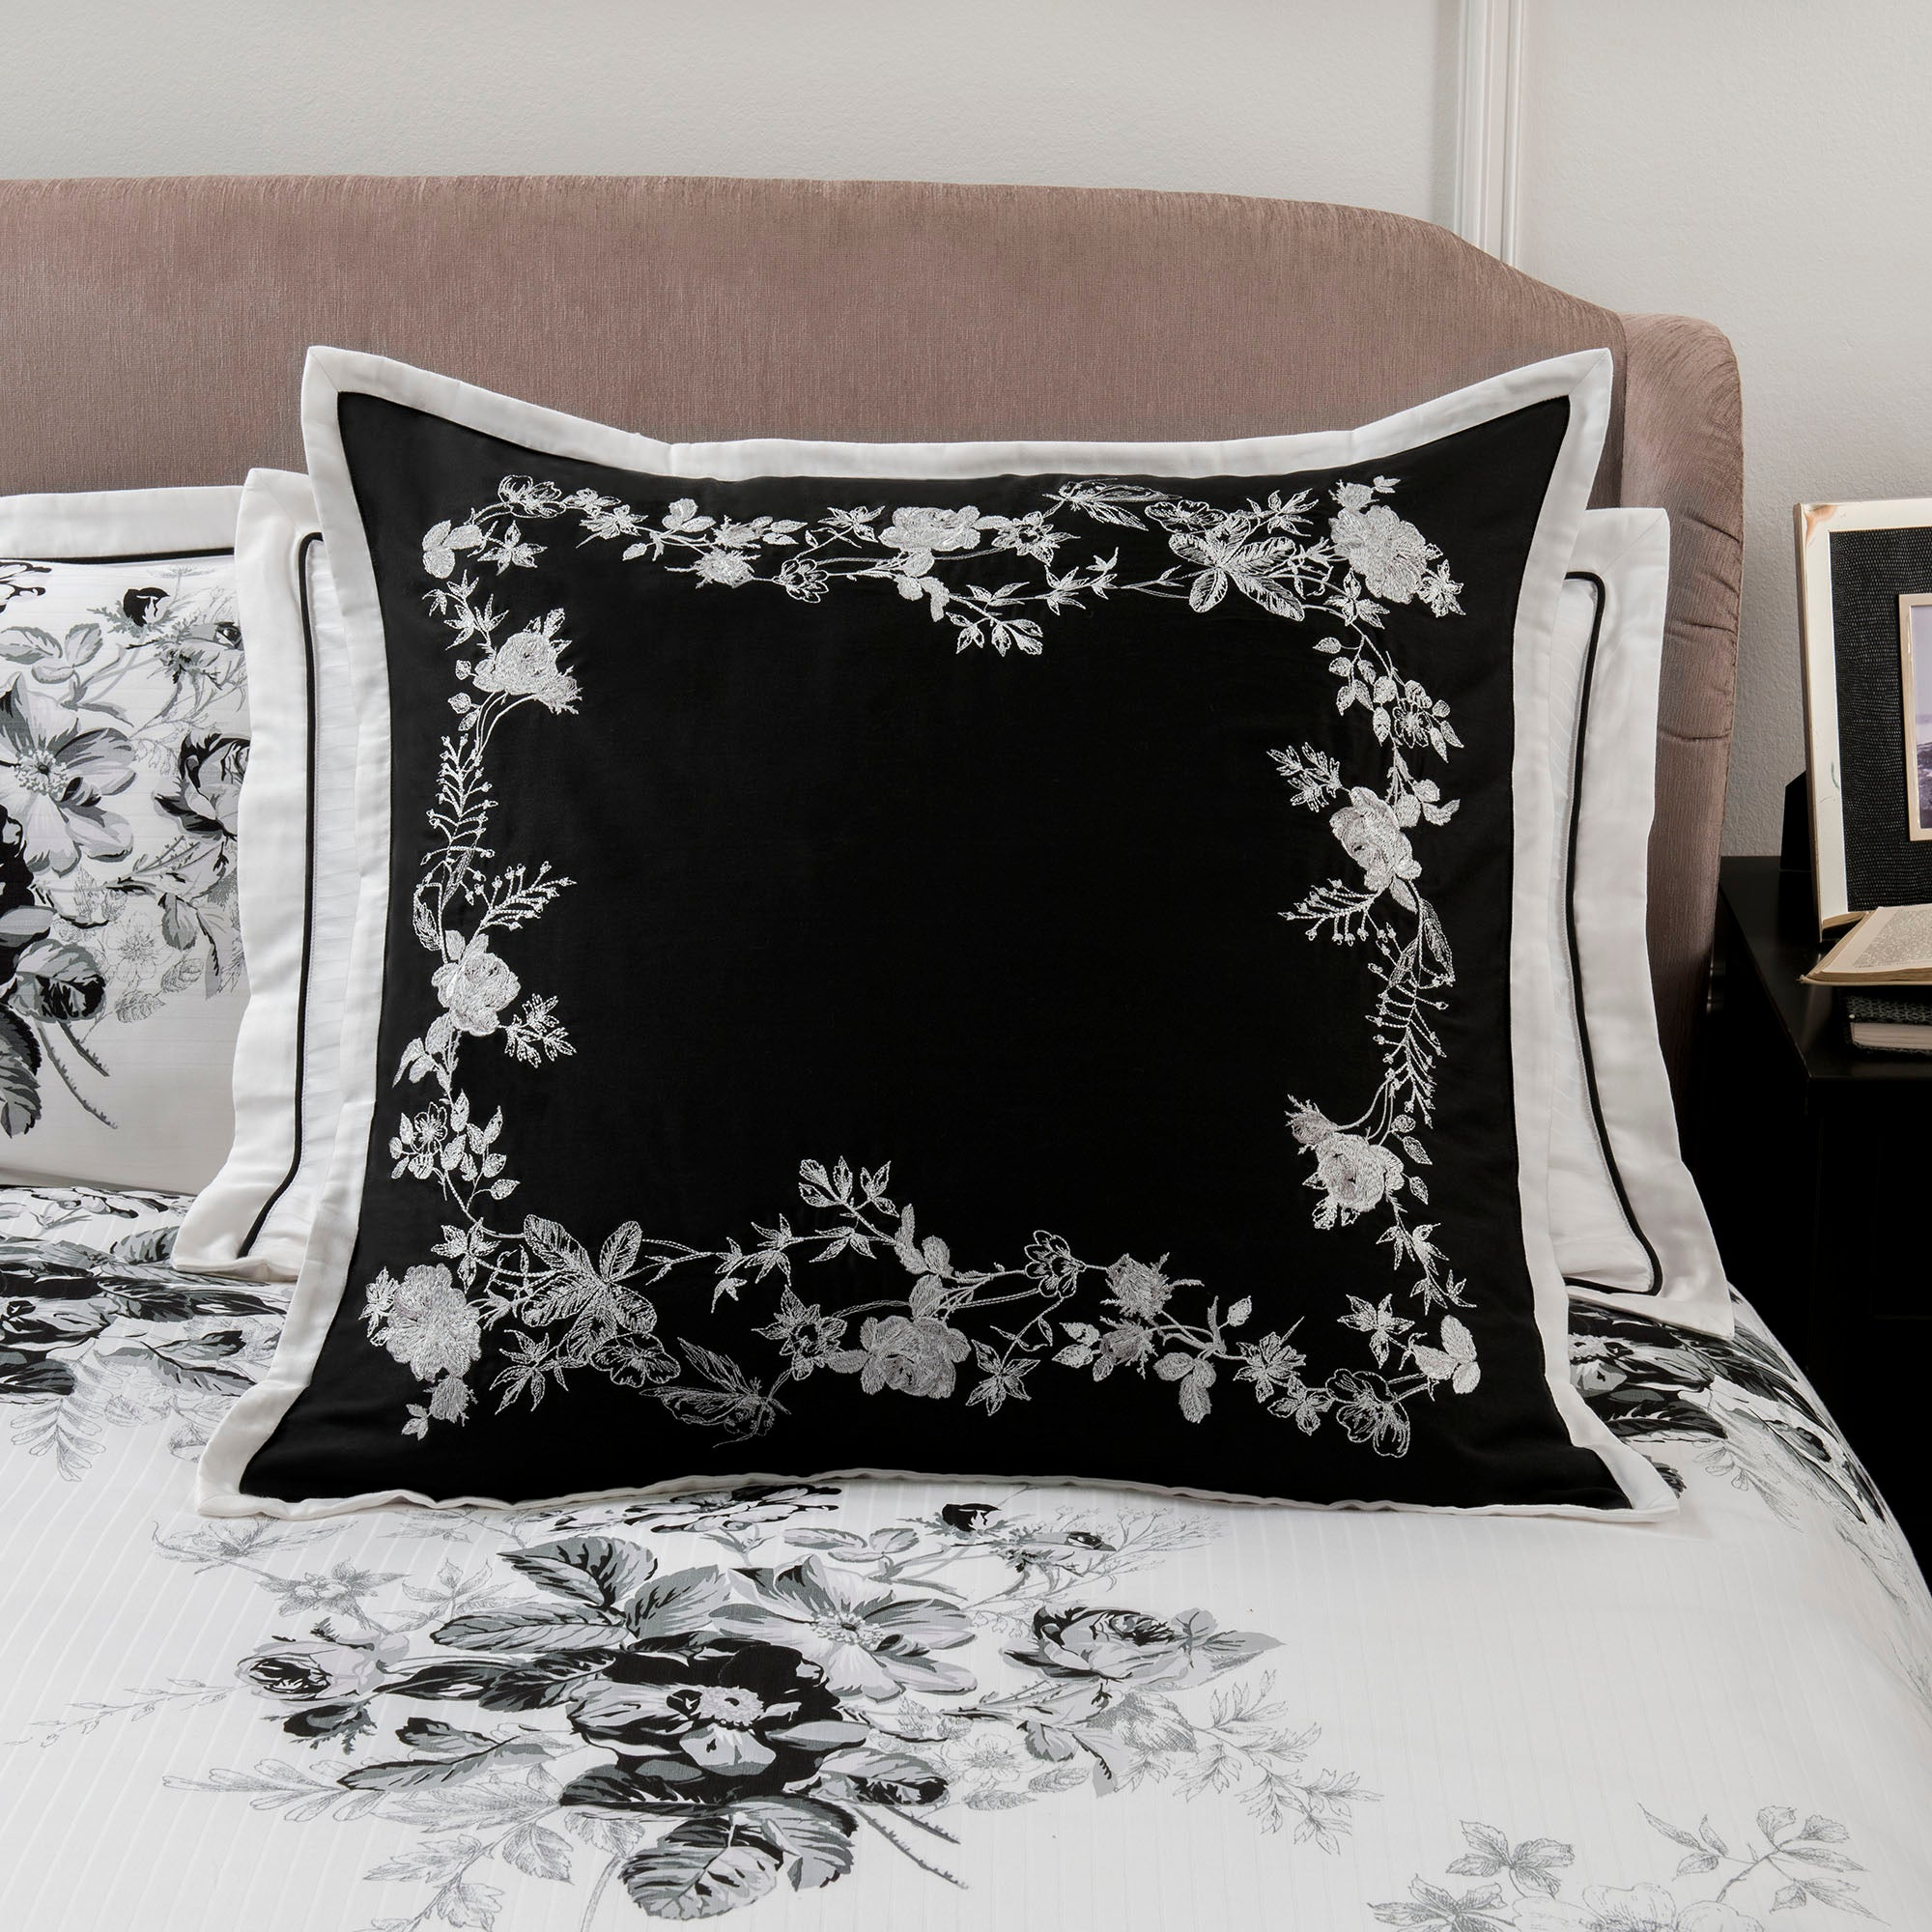 Dorma Black and White Gardenia Collection Continental Pillowcase